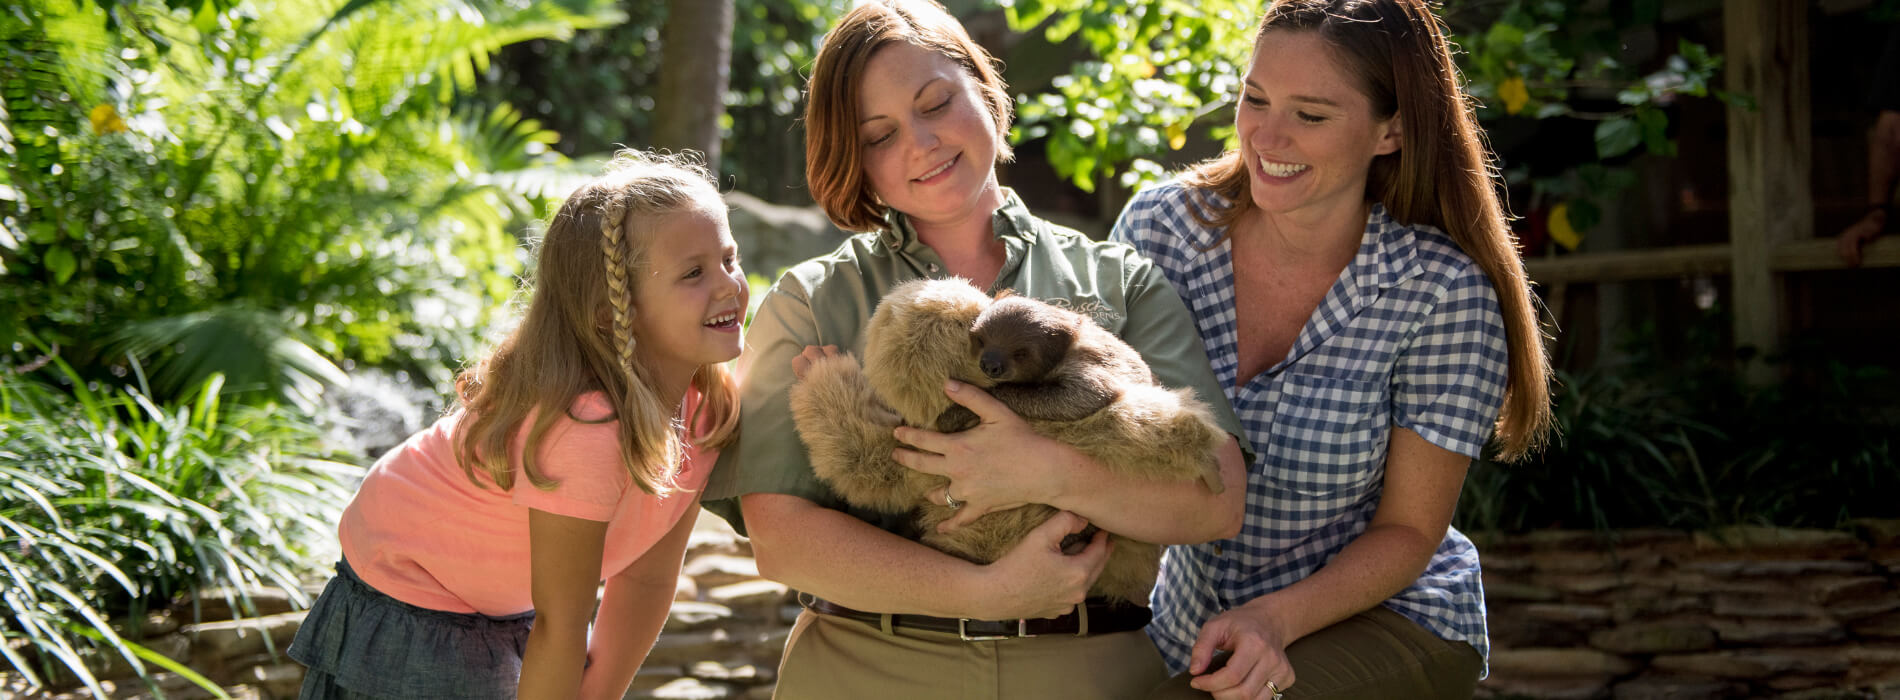 Educational Programs at Busch Gardens Tampa Bay